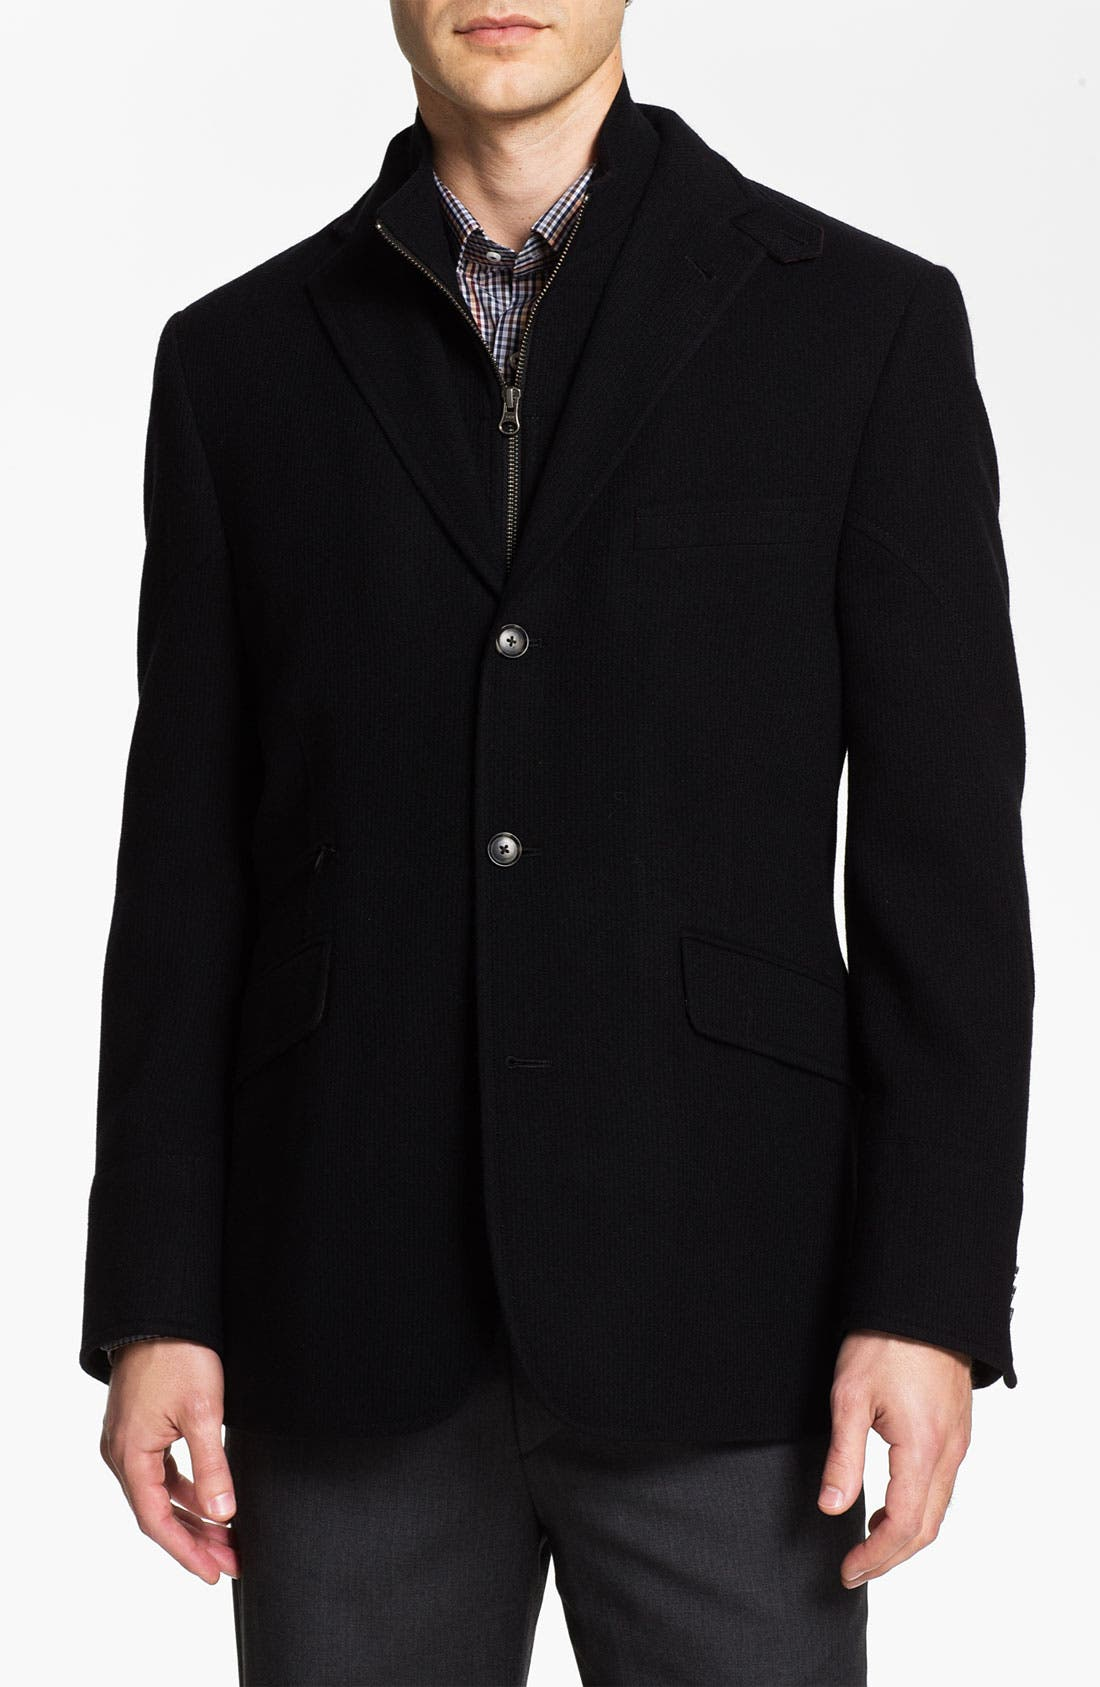 Alternate Image 1 Selected - Kroon 'Ritchie' Wool Blend Sportcoat